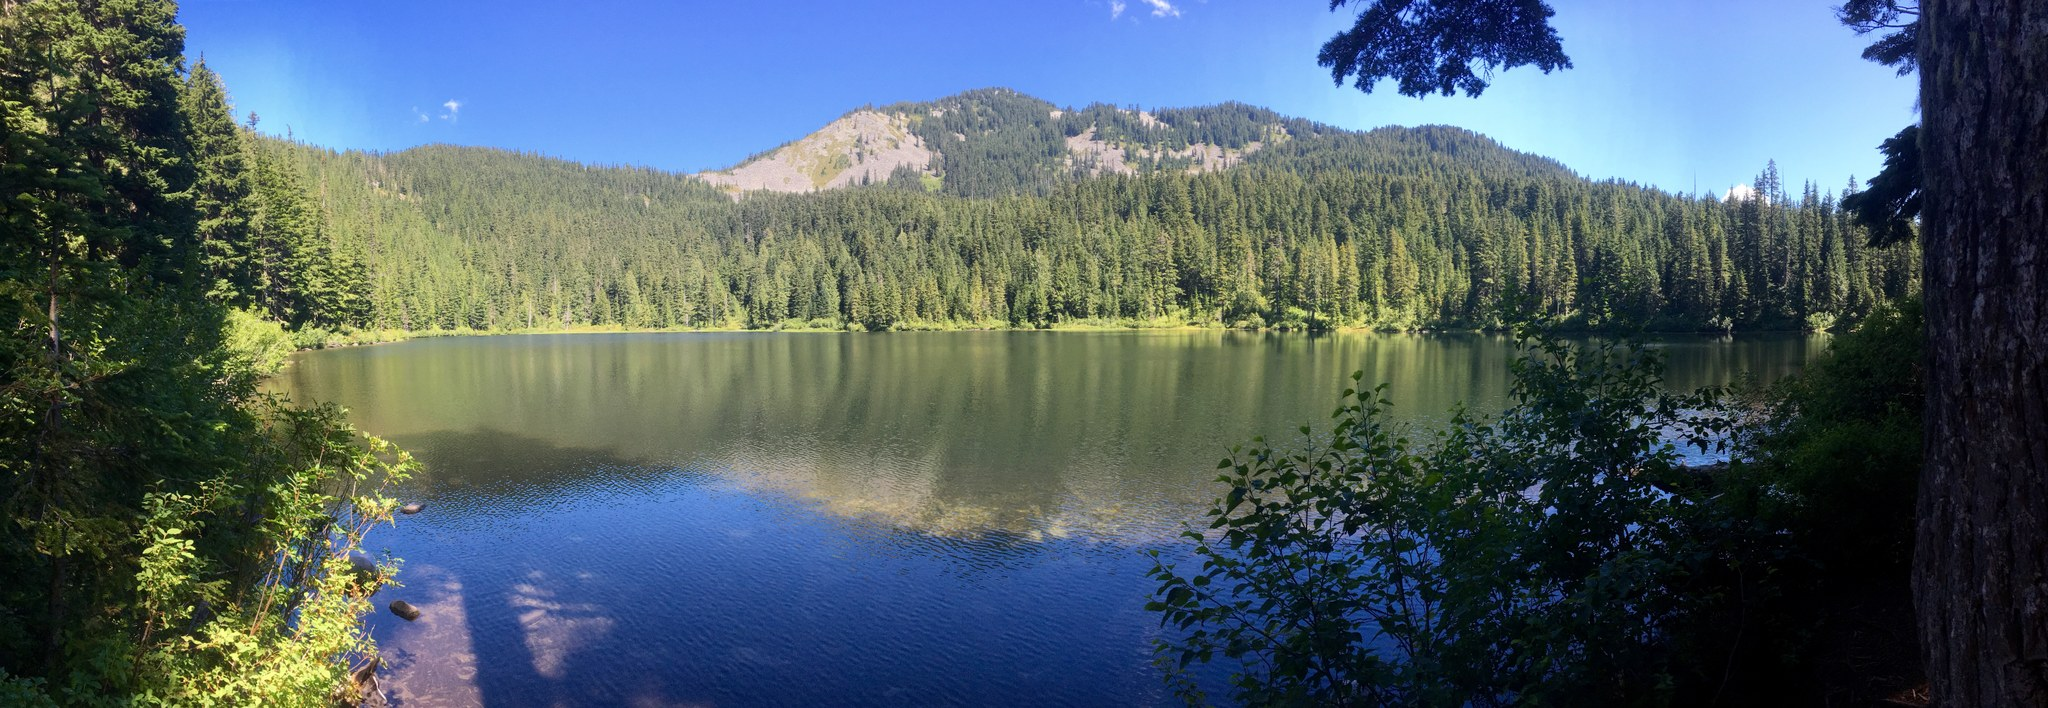 Olallie Lake.jpeg